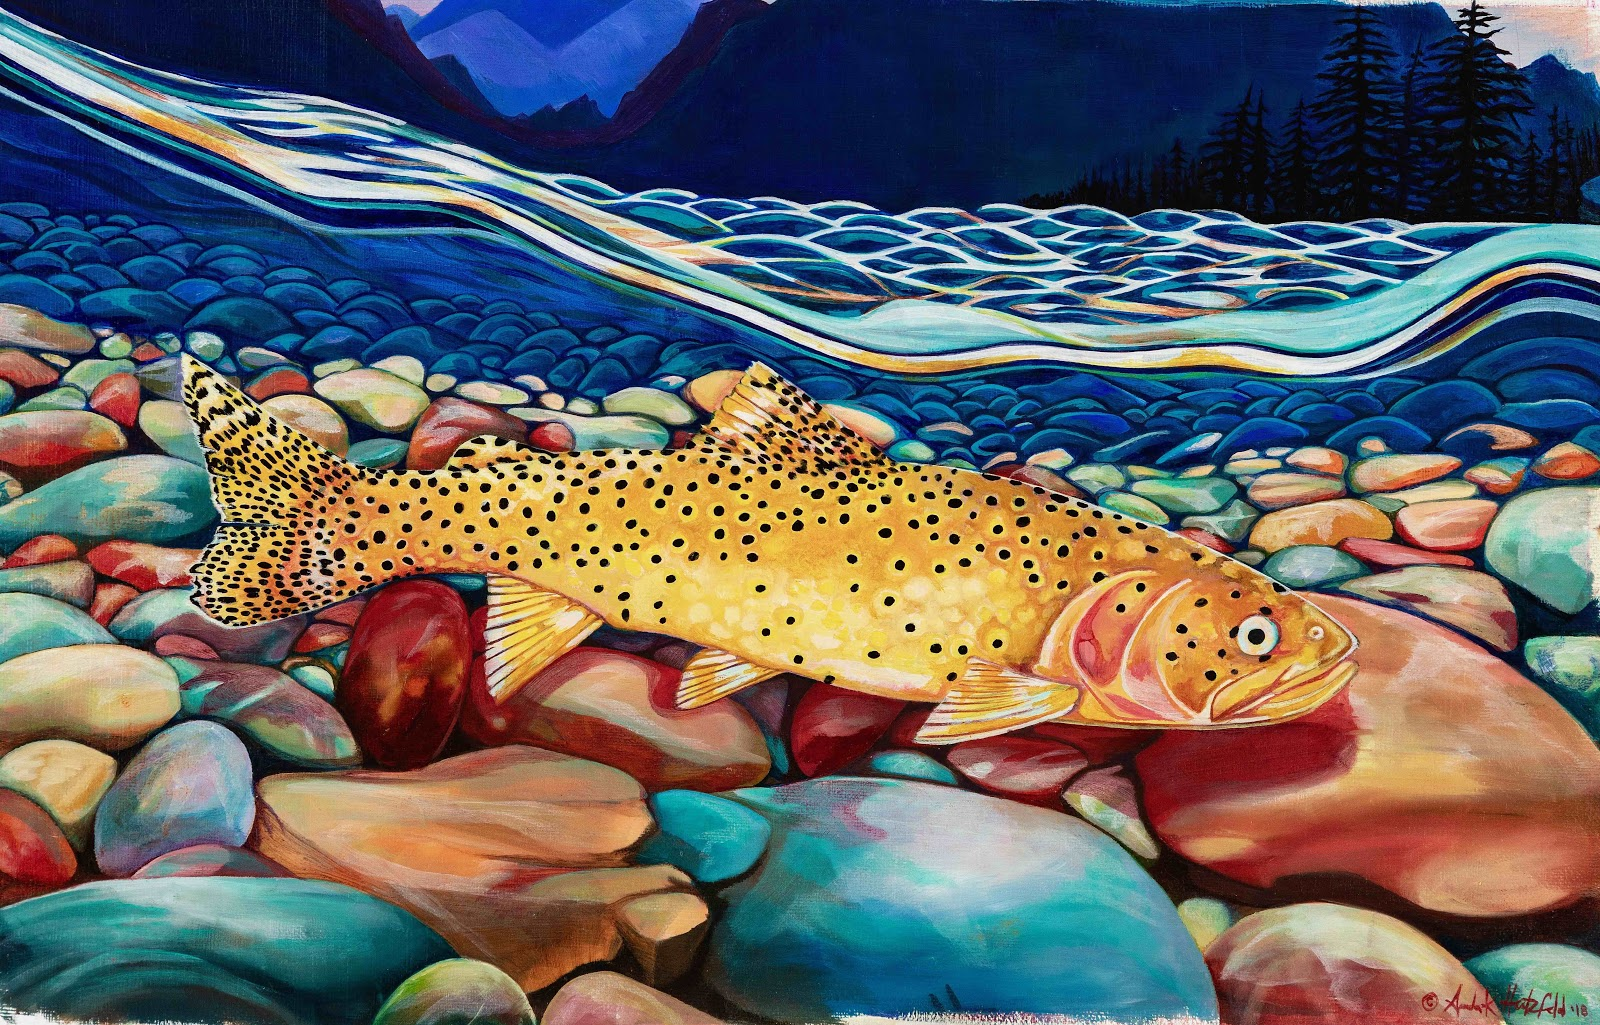 Painting of a cutthroat trout swimming in a stream